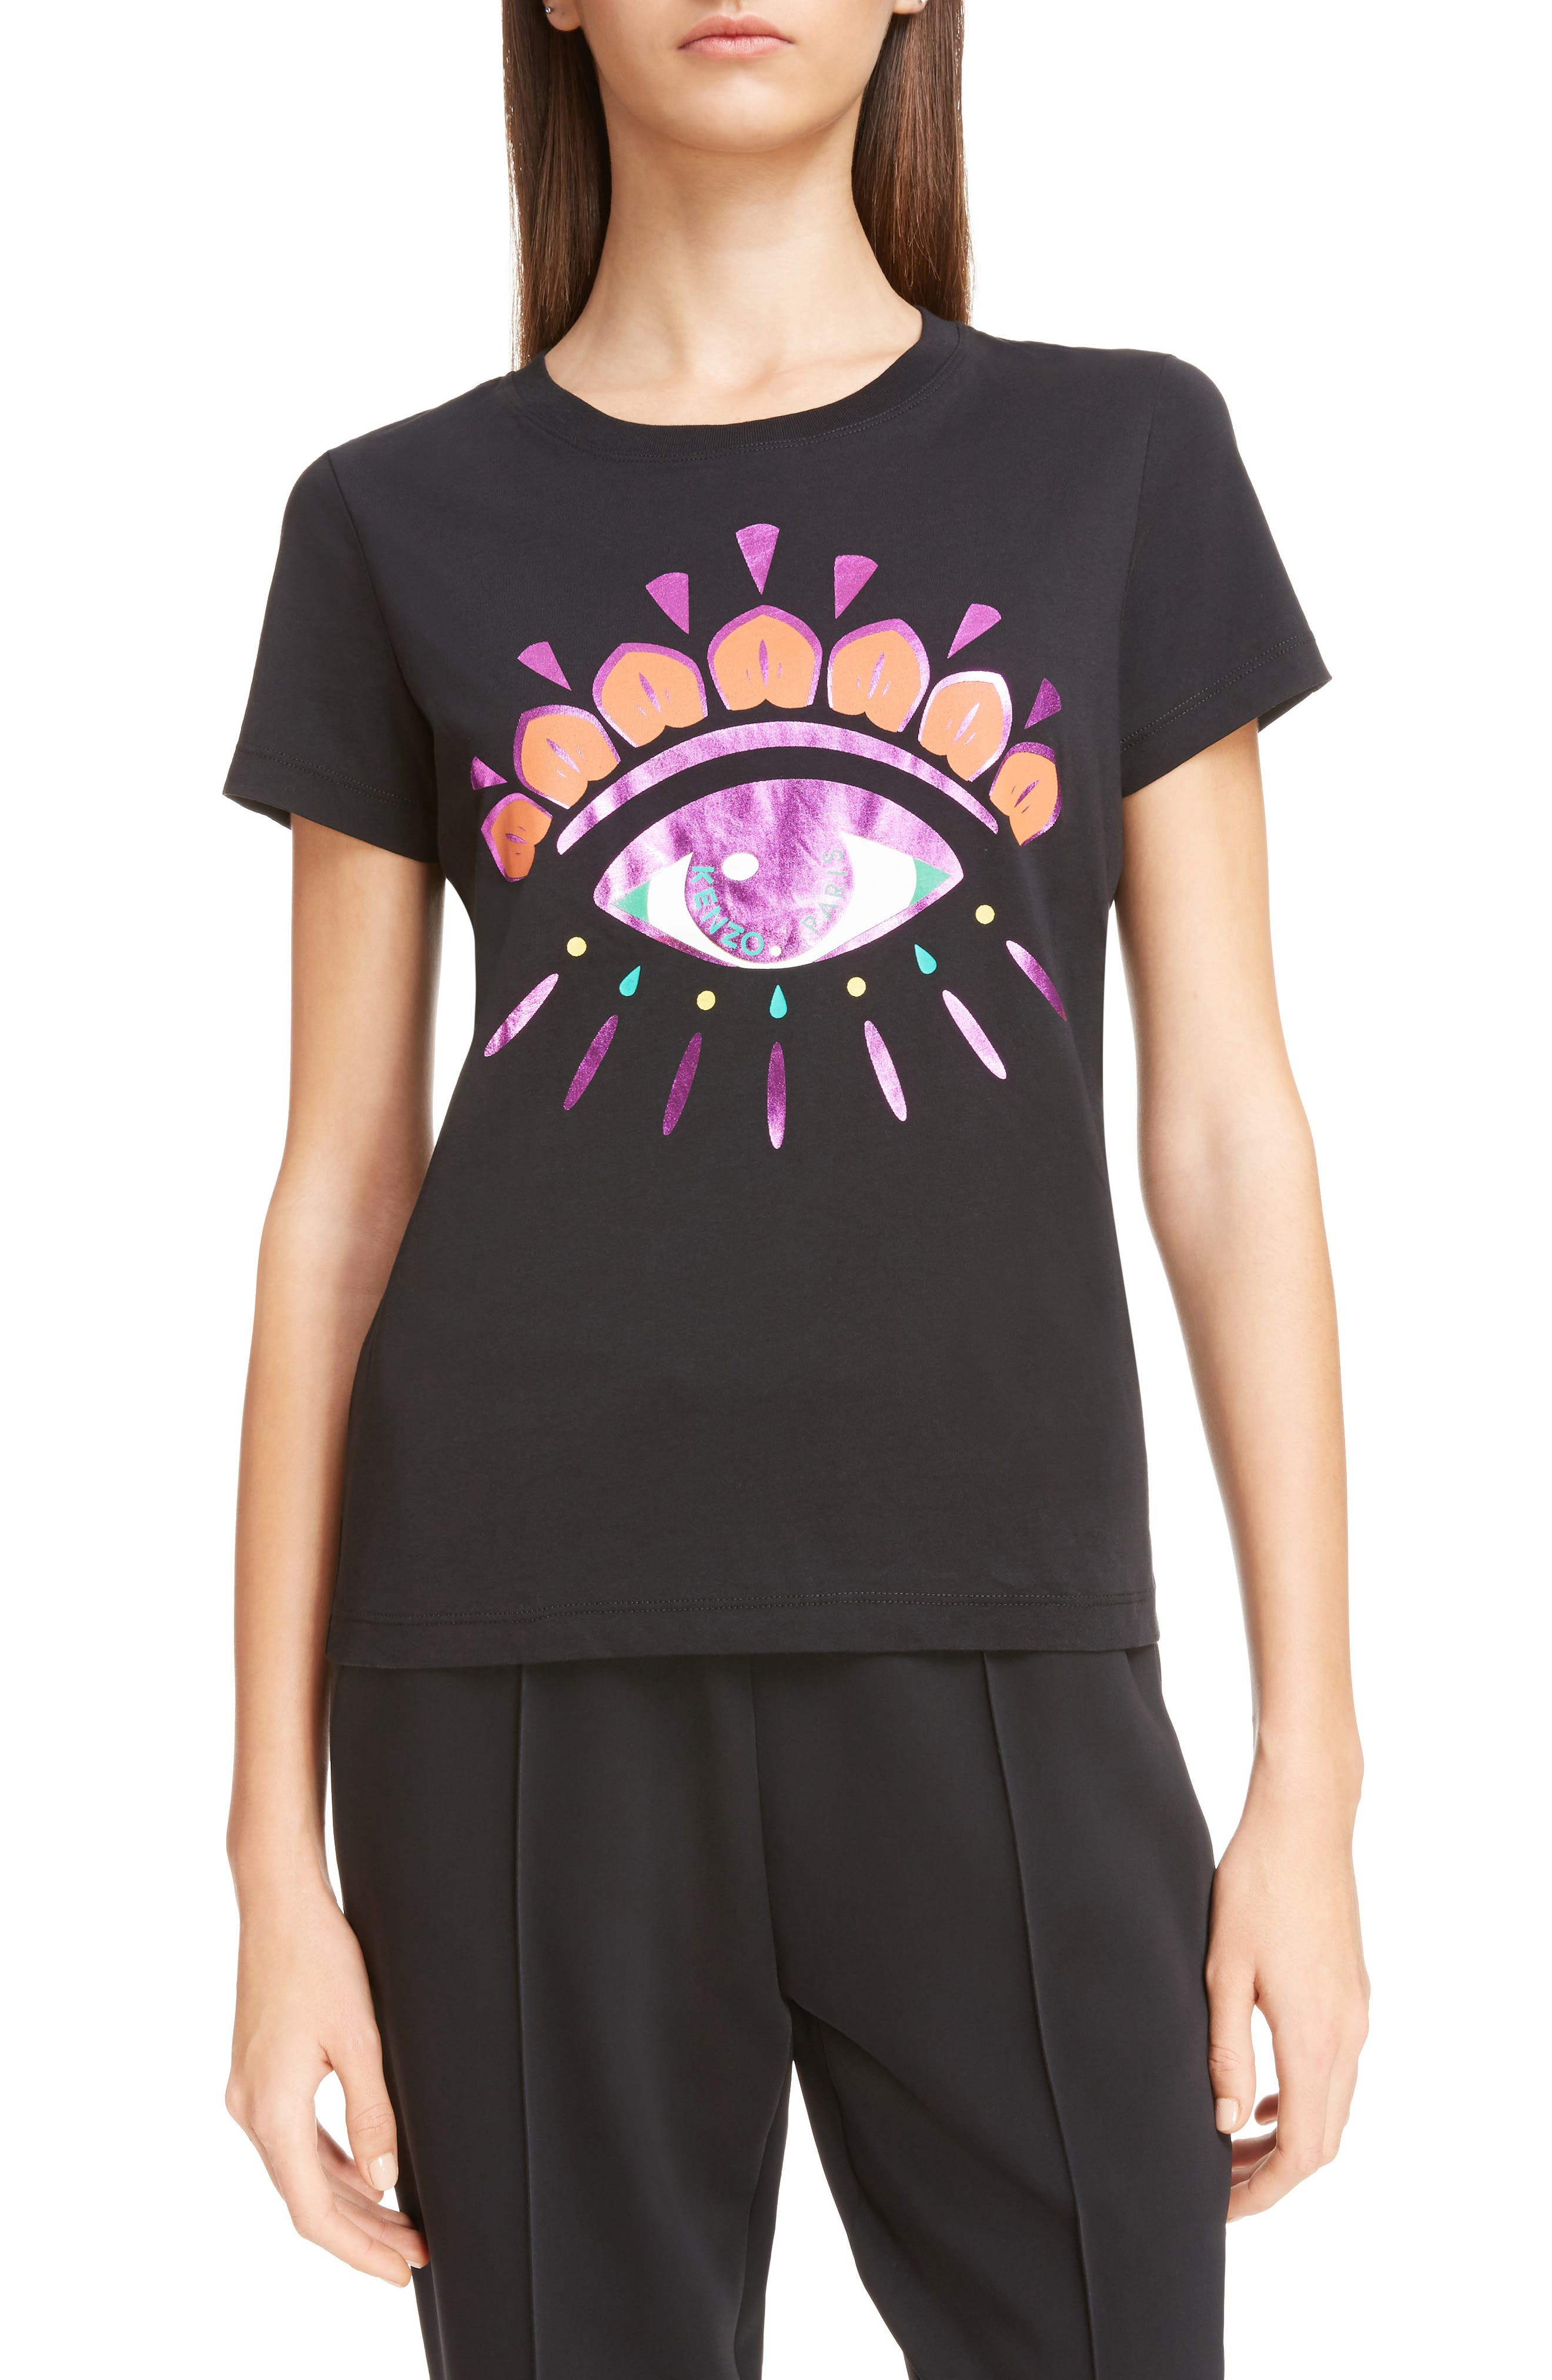 KENZO Classic Fit Graphic Tee